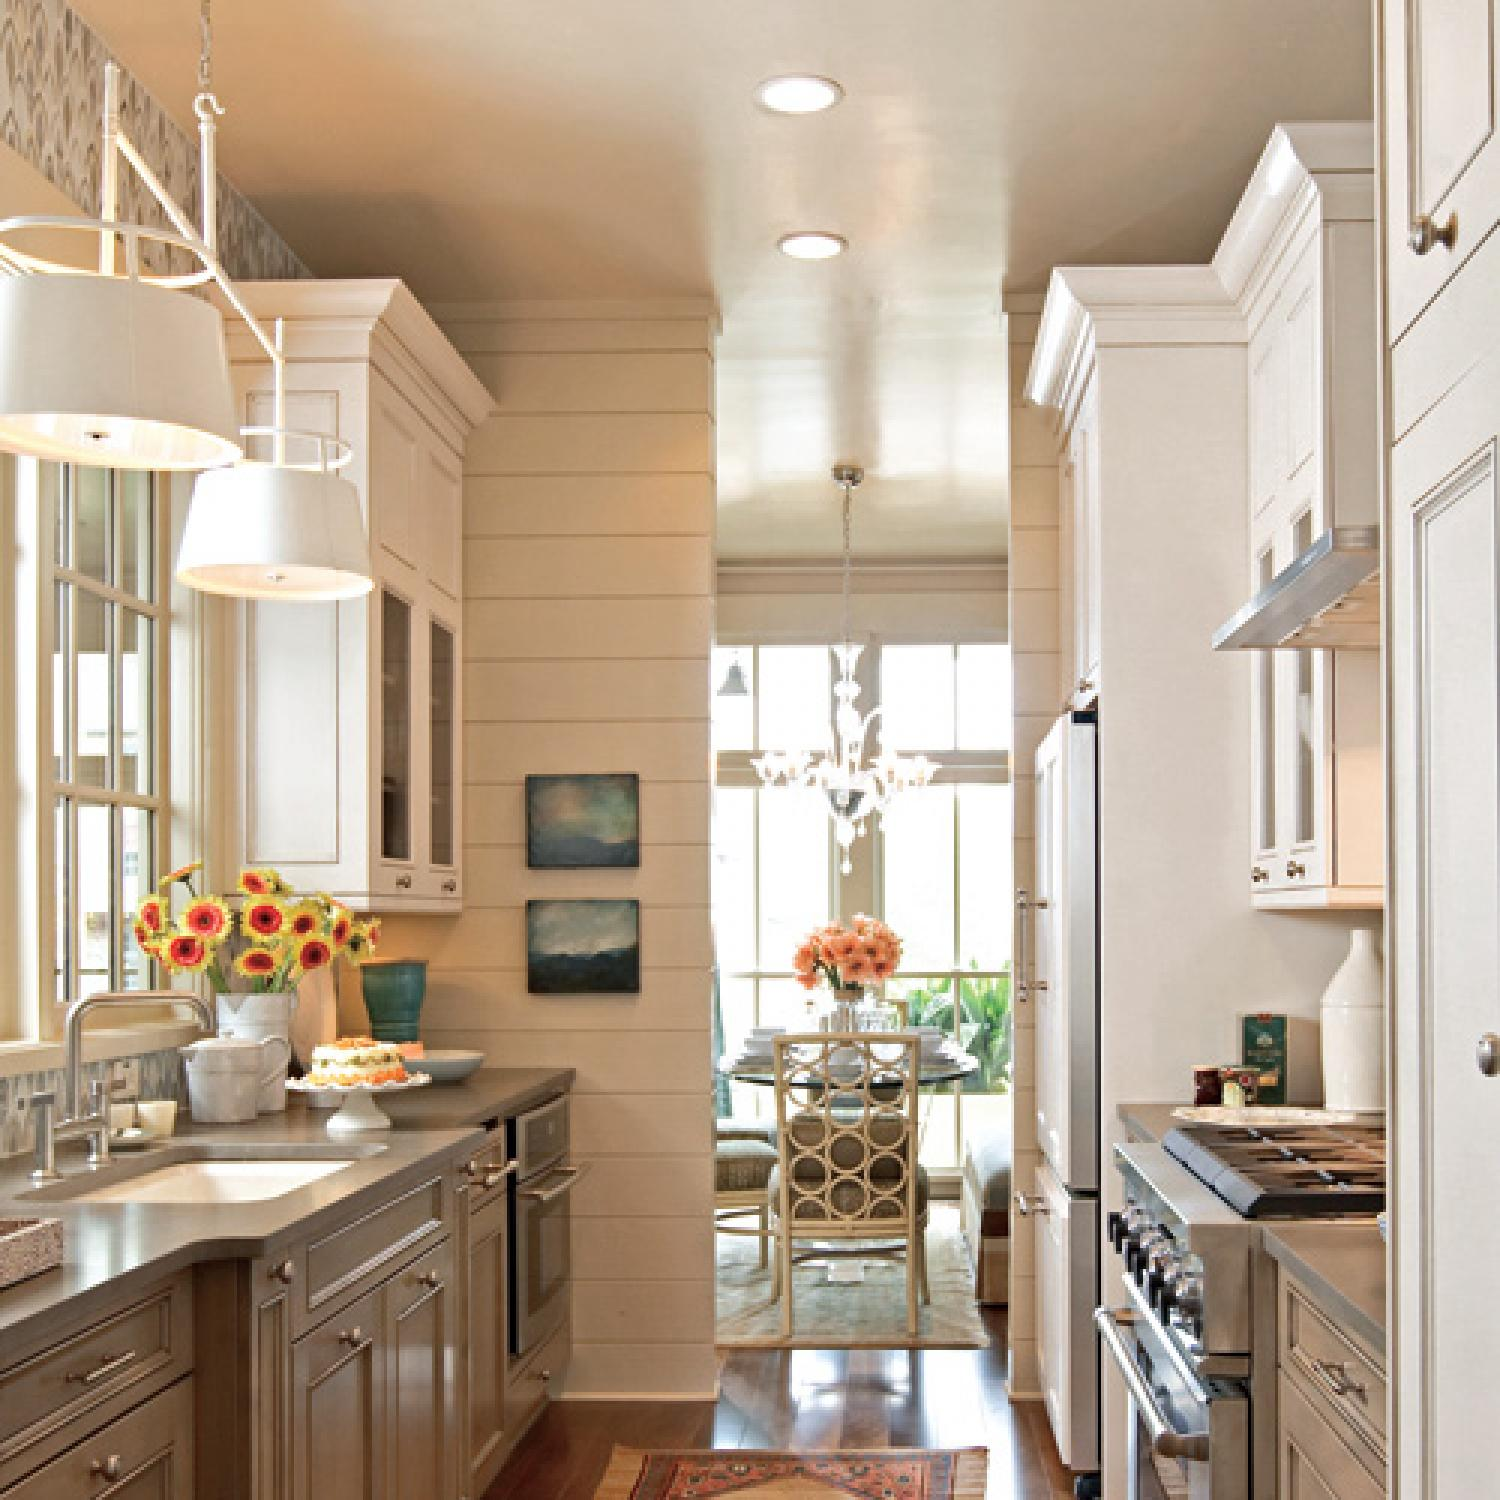 Ordinary Remodel Ideas For Small Kitchen Part - 6: Traditional Home